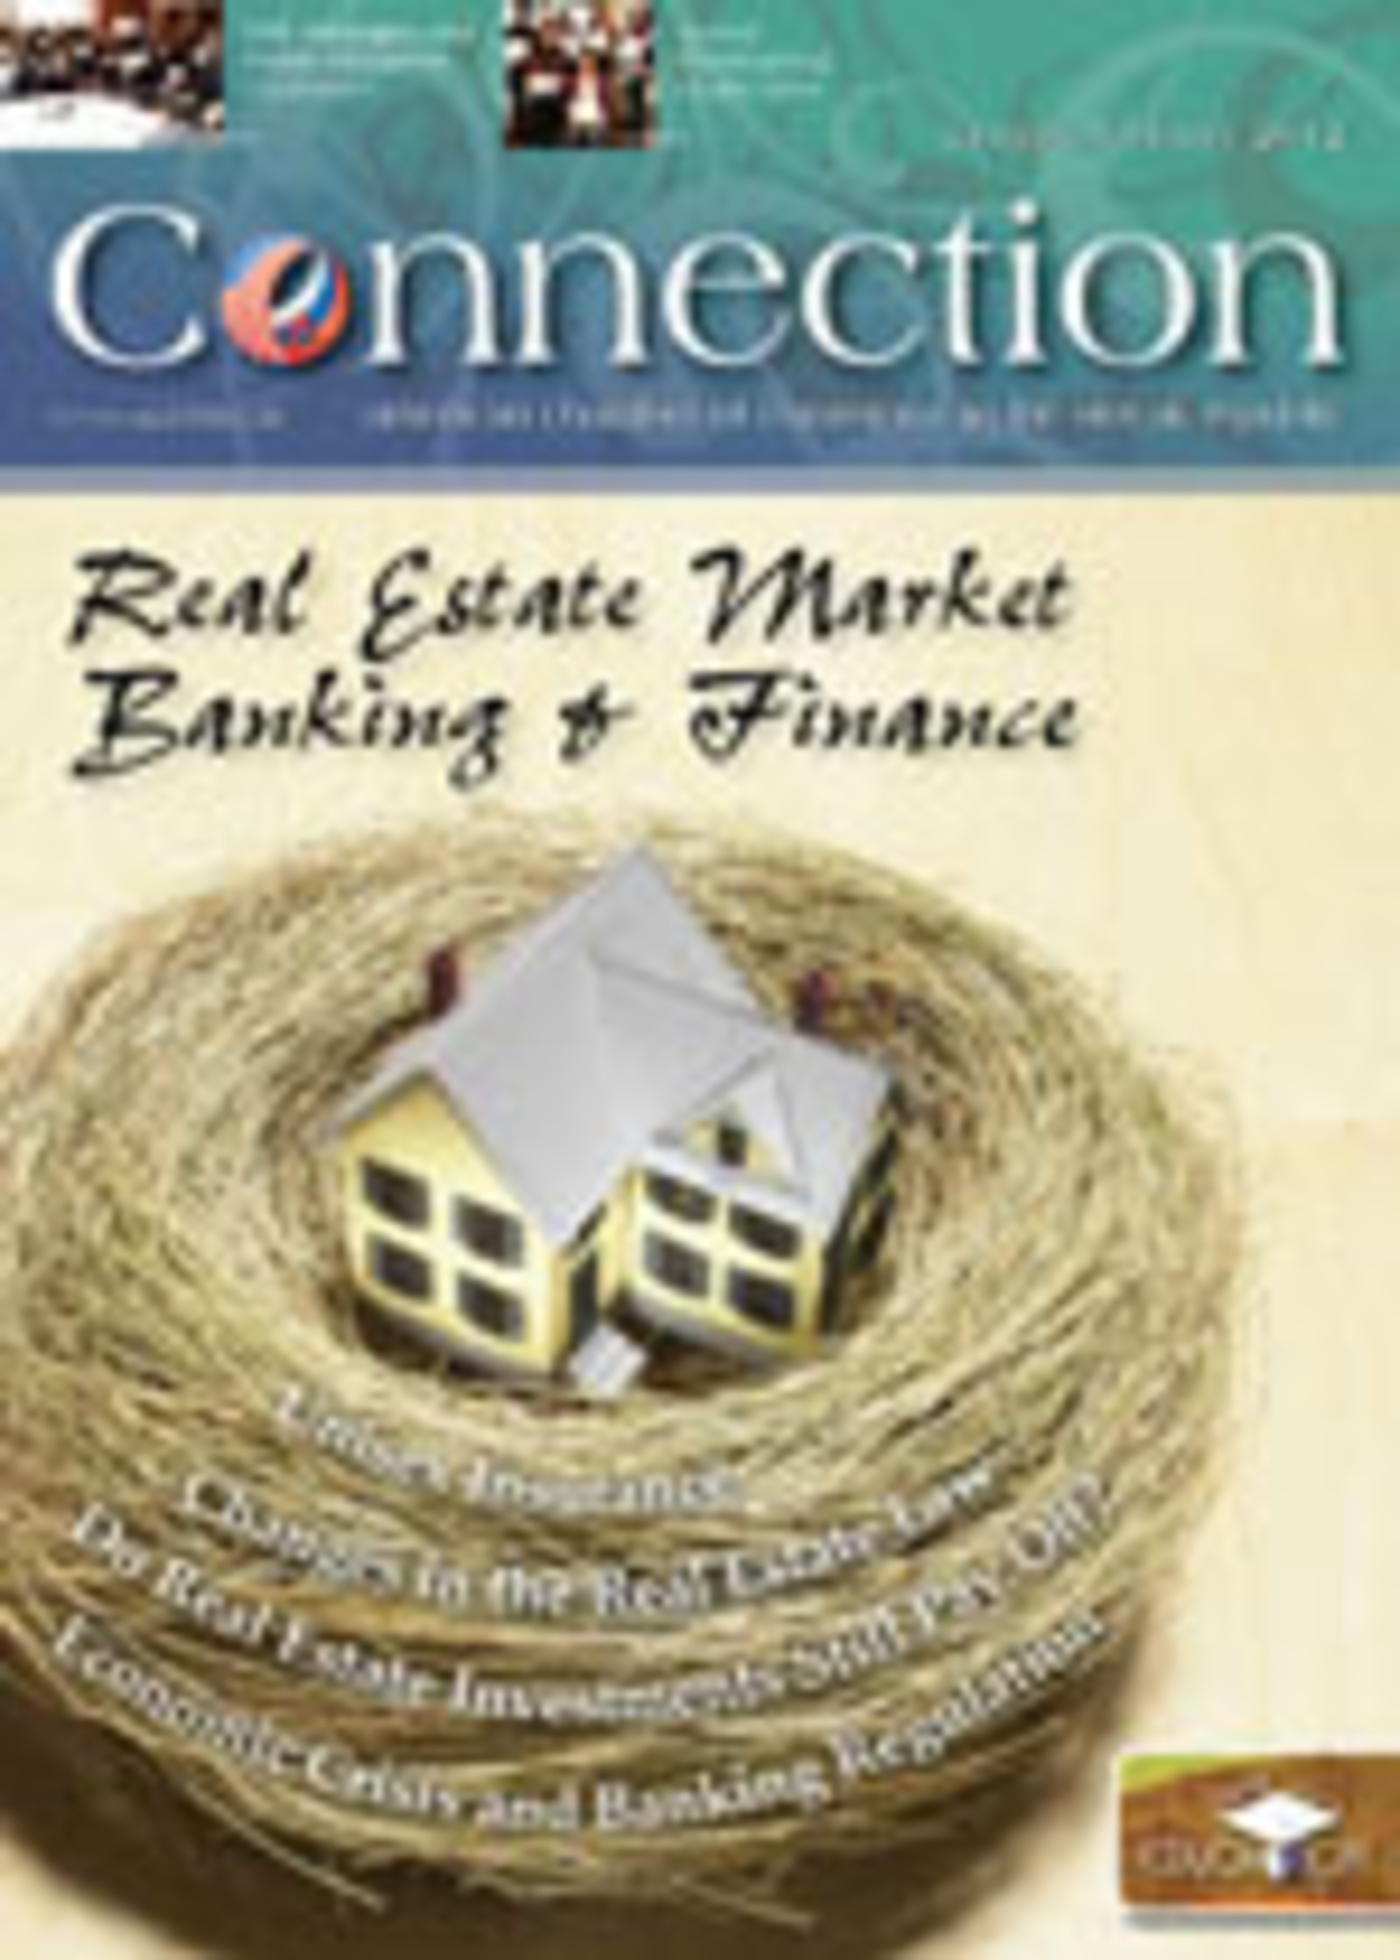 2012-01 / Real Estate Market, Banking & Finance